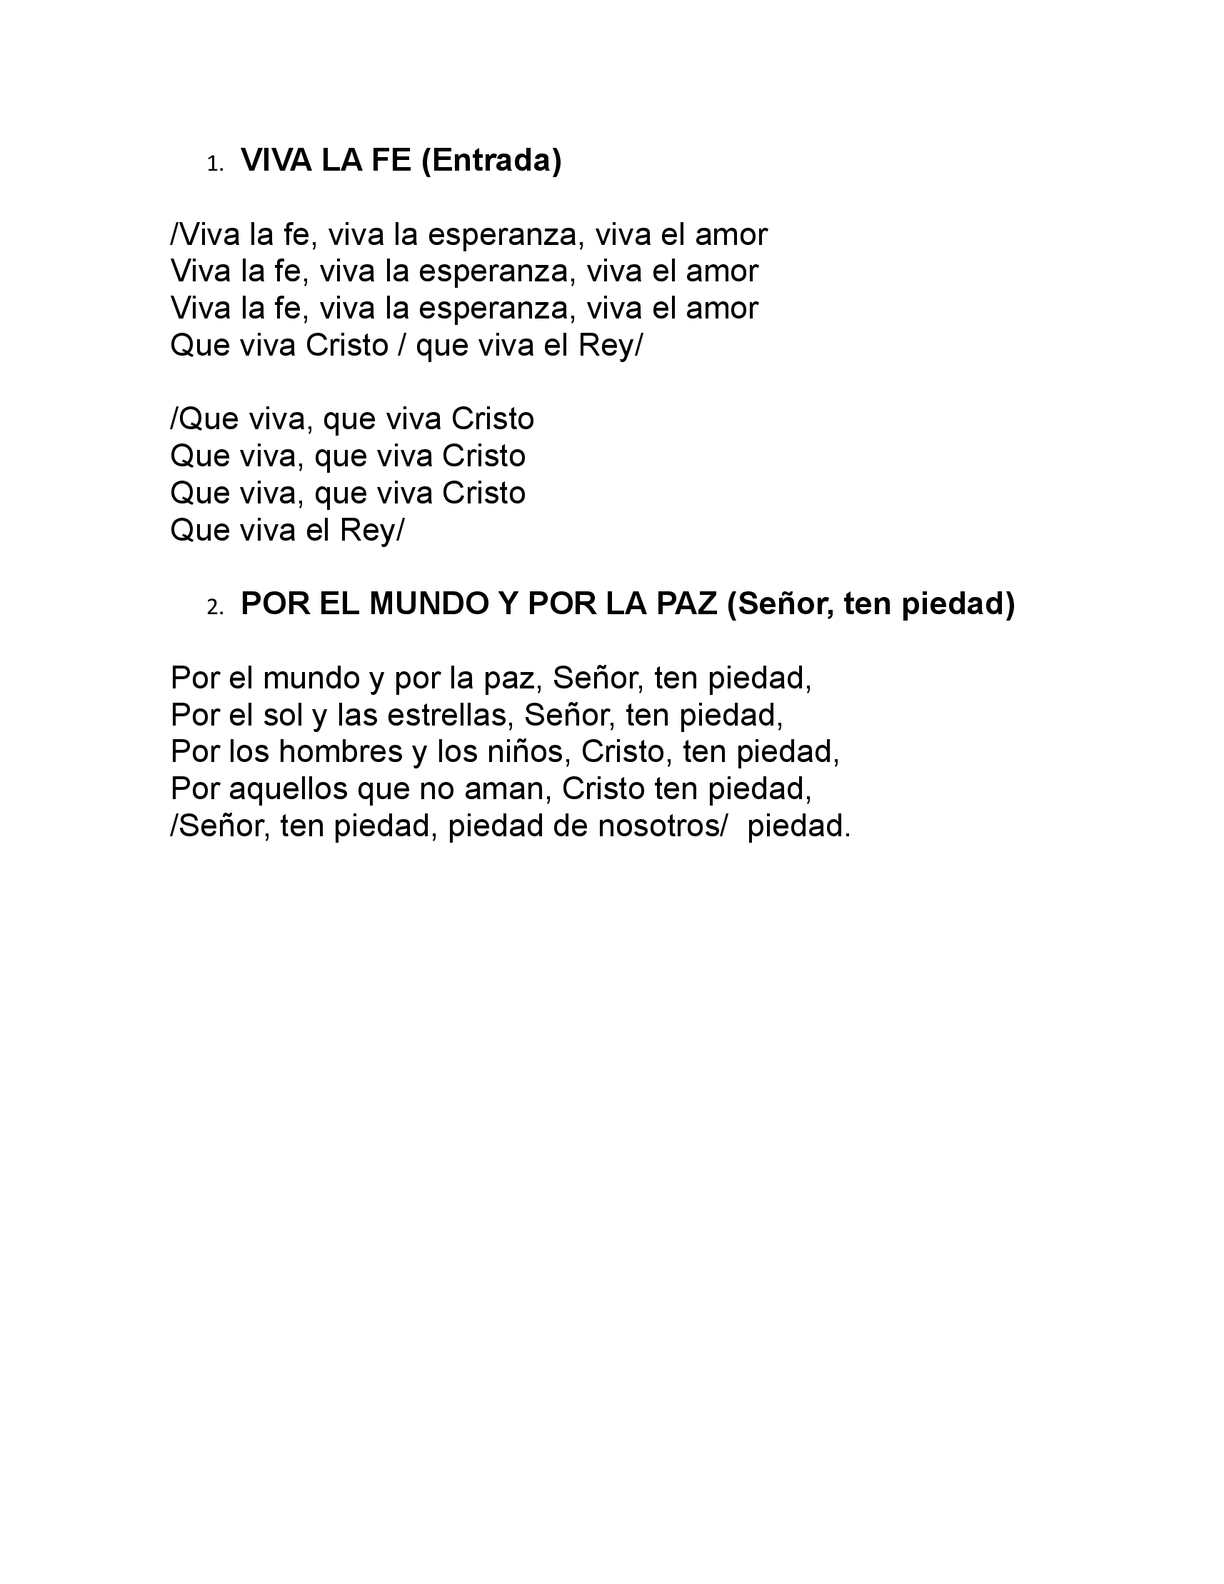 Canto de amor lyrics